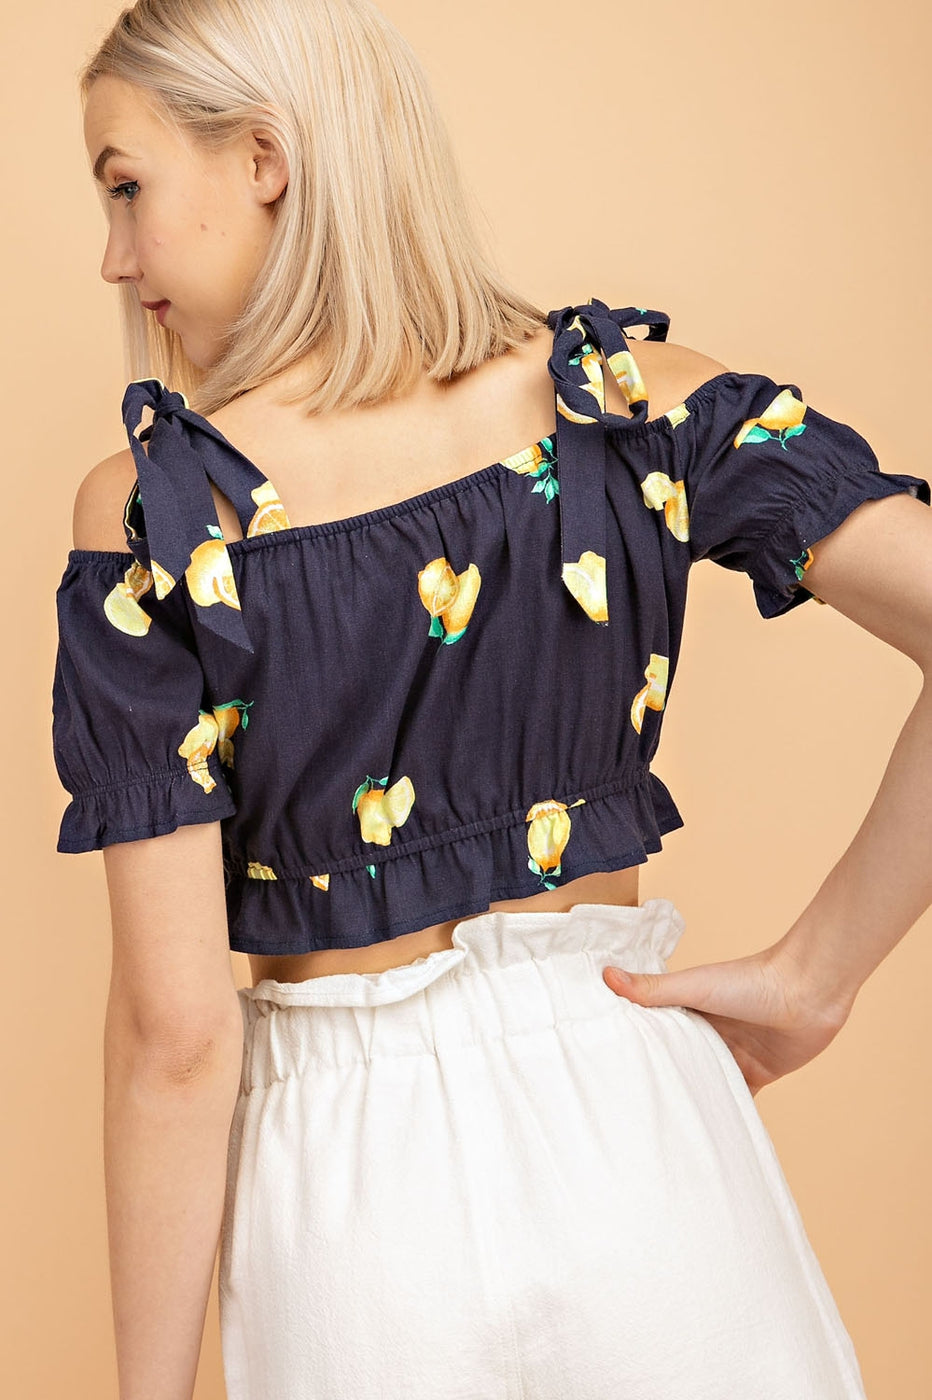 Tie Shoulder Crop Top With Elastic In Navy-Yellow Siin Bees